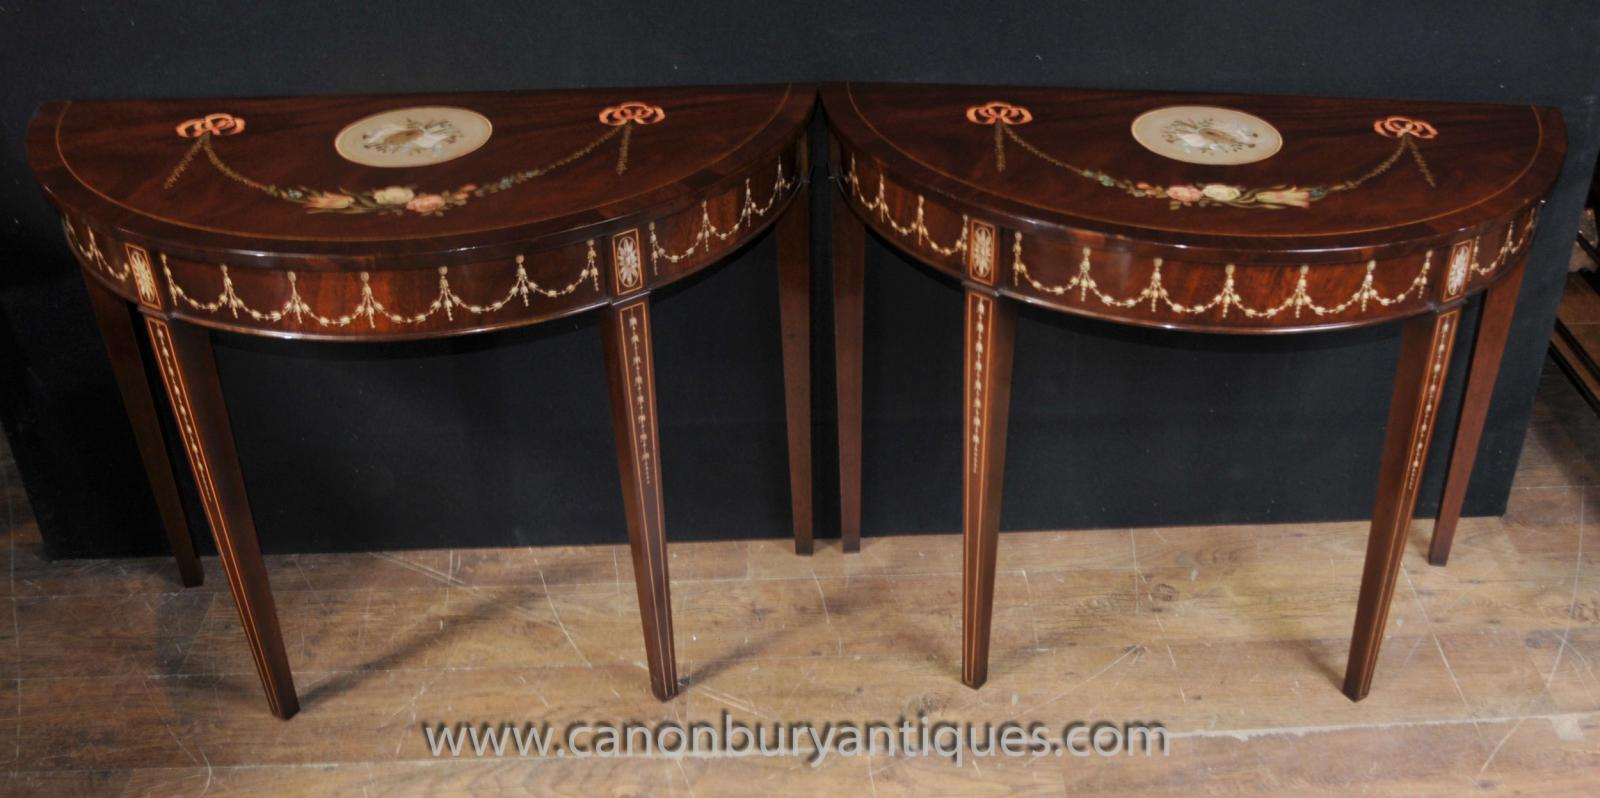 Pair Sheraton Painted Console Tables In Mahogany Regency Furniture Ebay